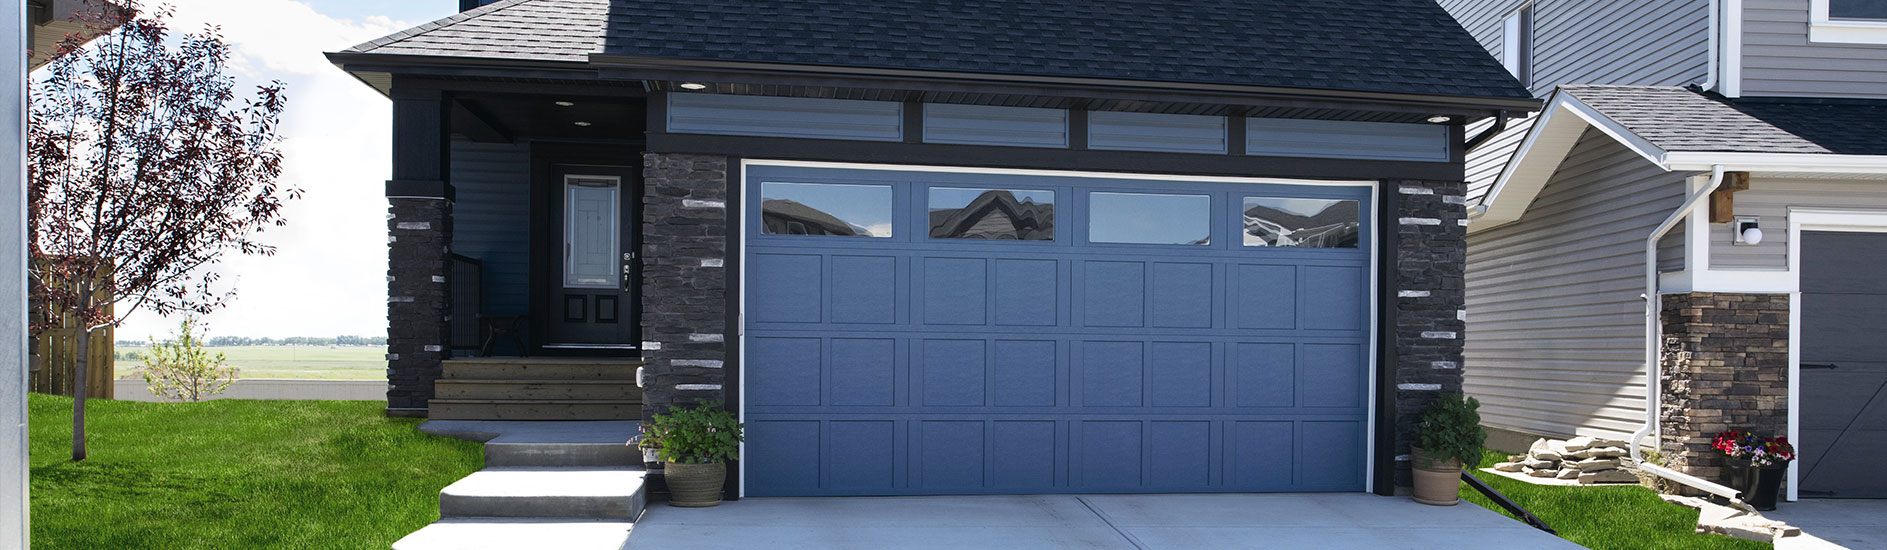 Residential Garage Doors Mc Overhead Door